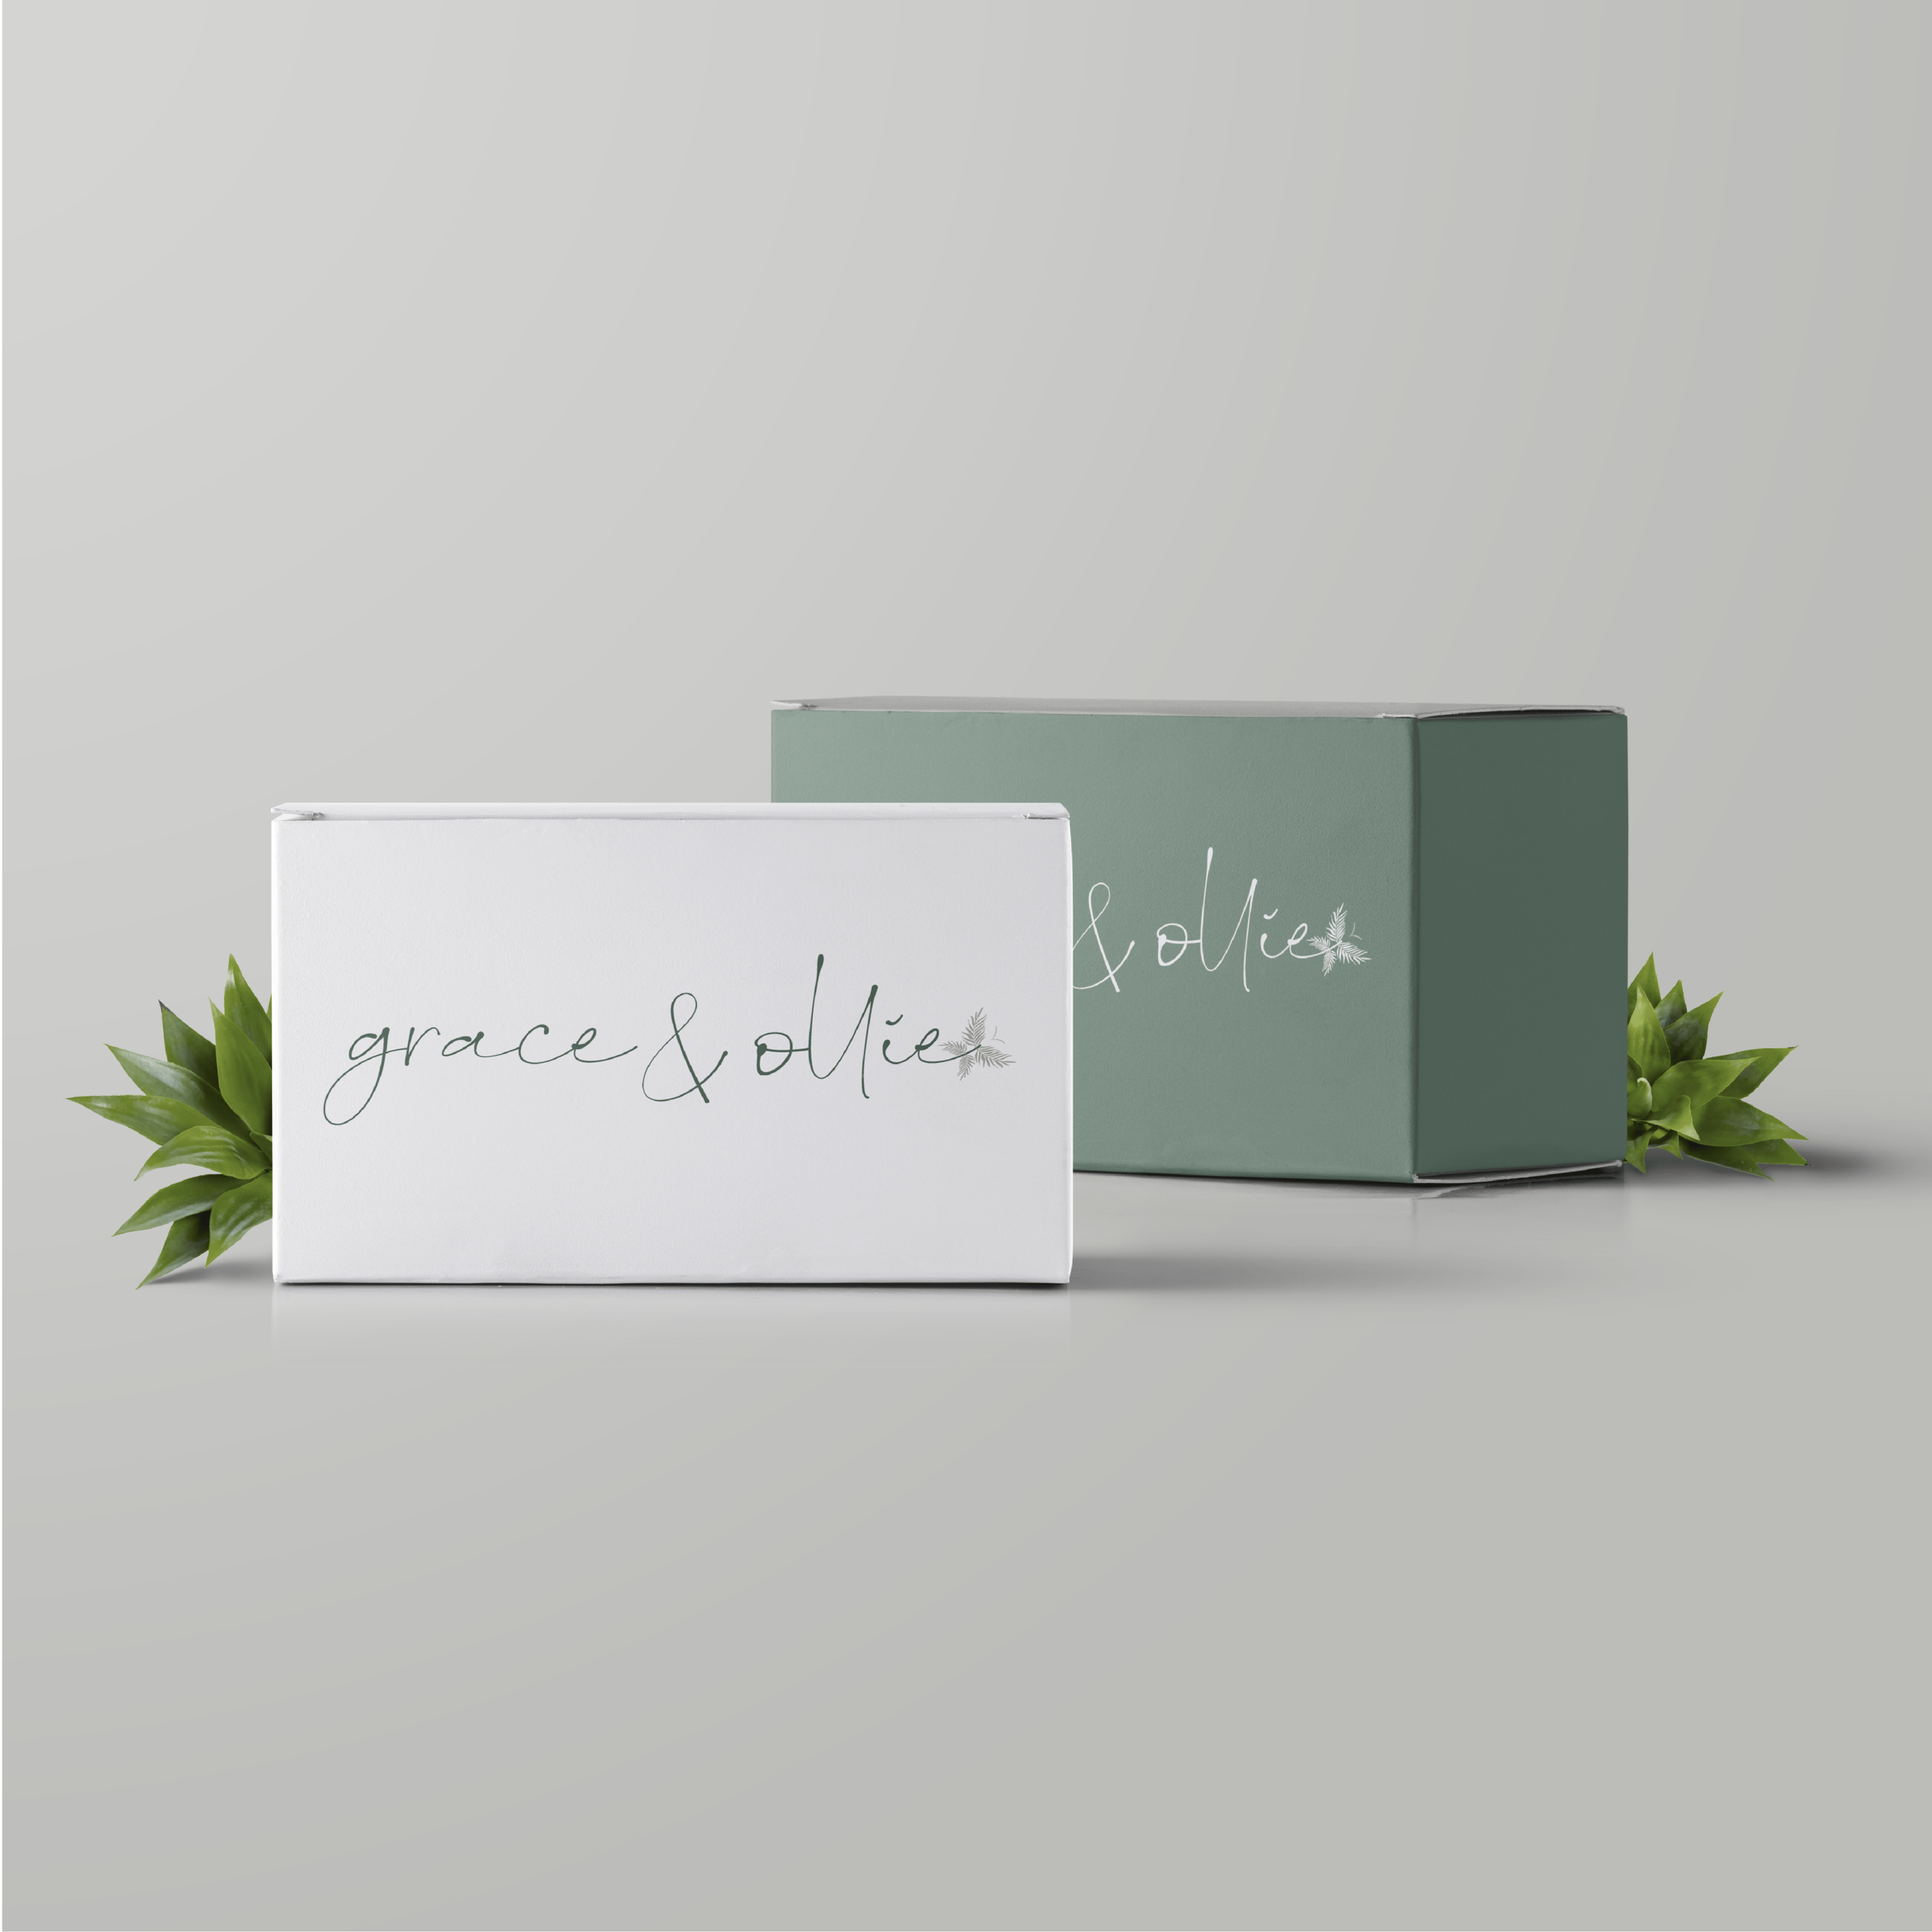 Grace and Ollie Brand and Logo Design by Kindly by Kelsea